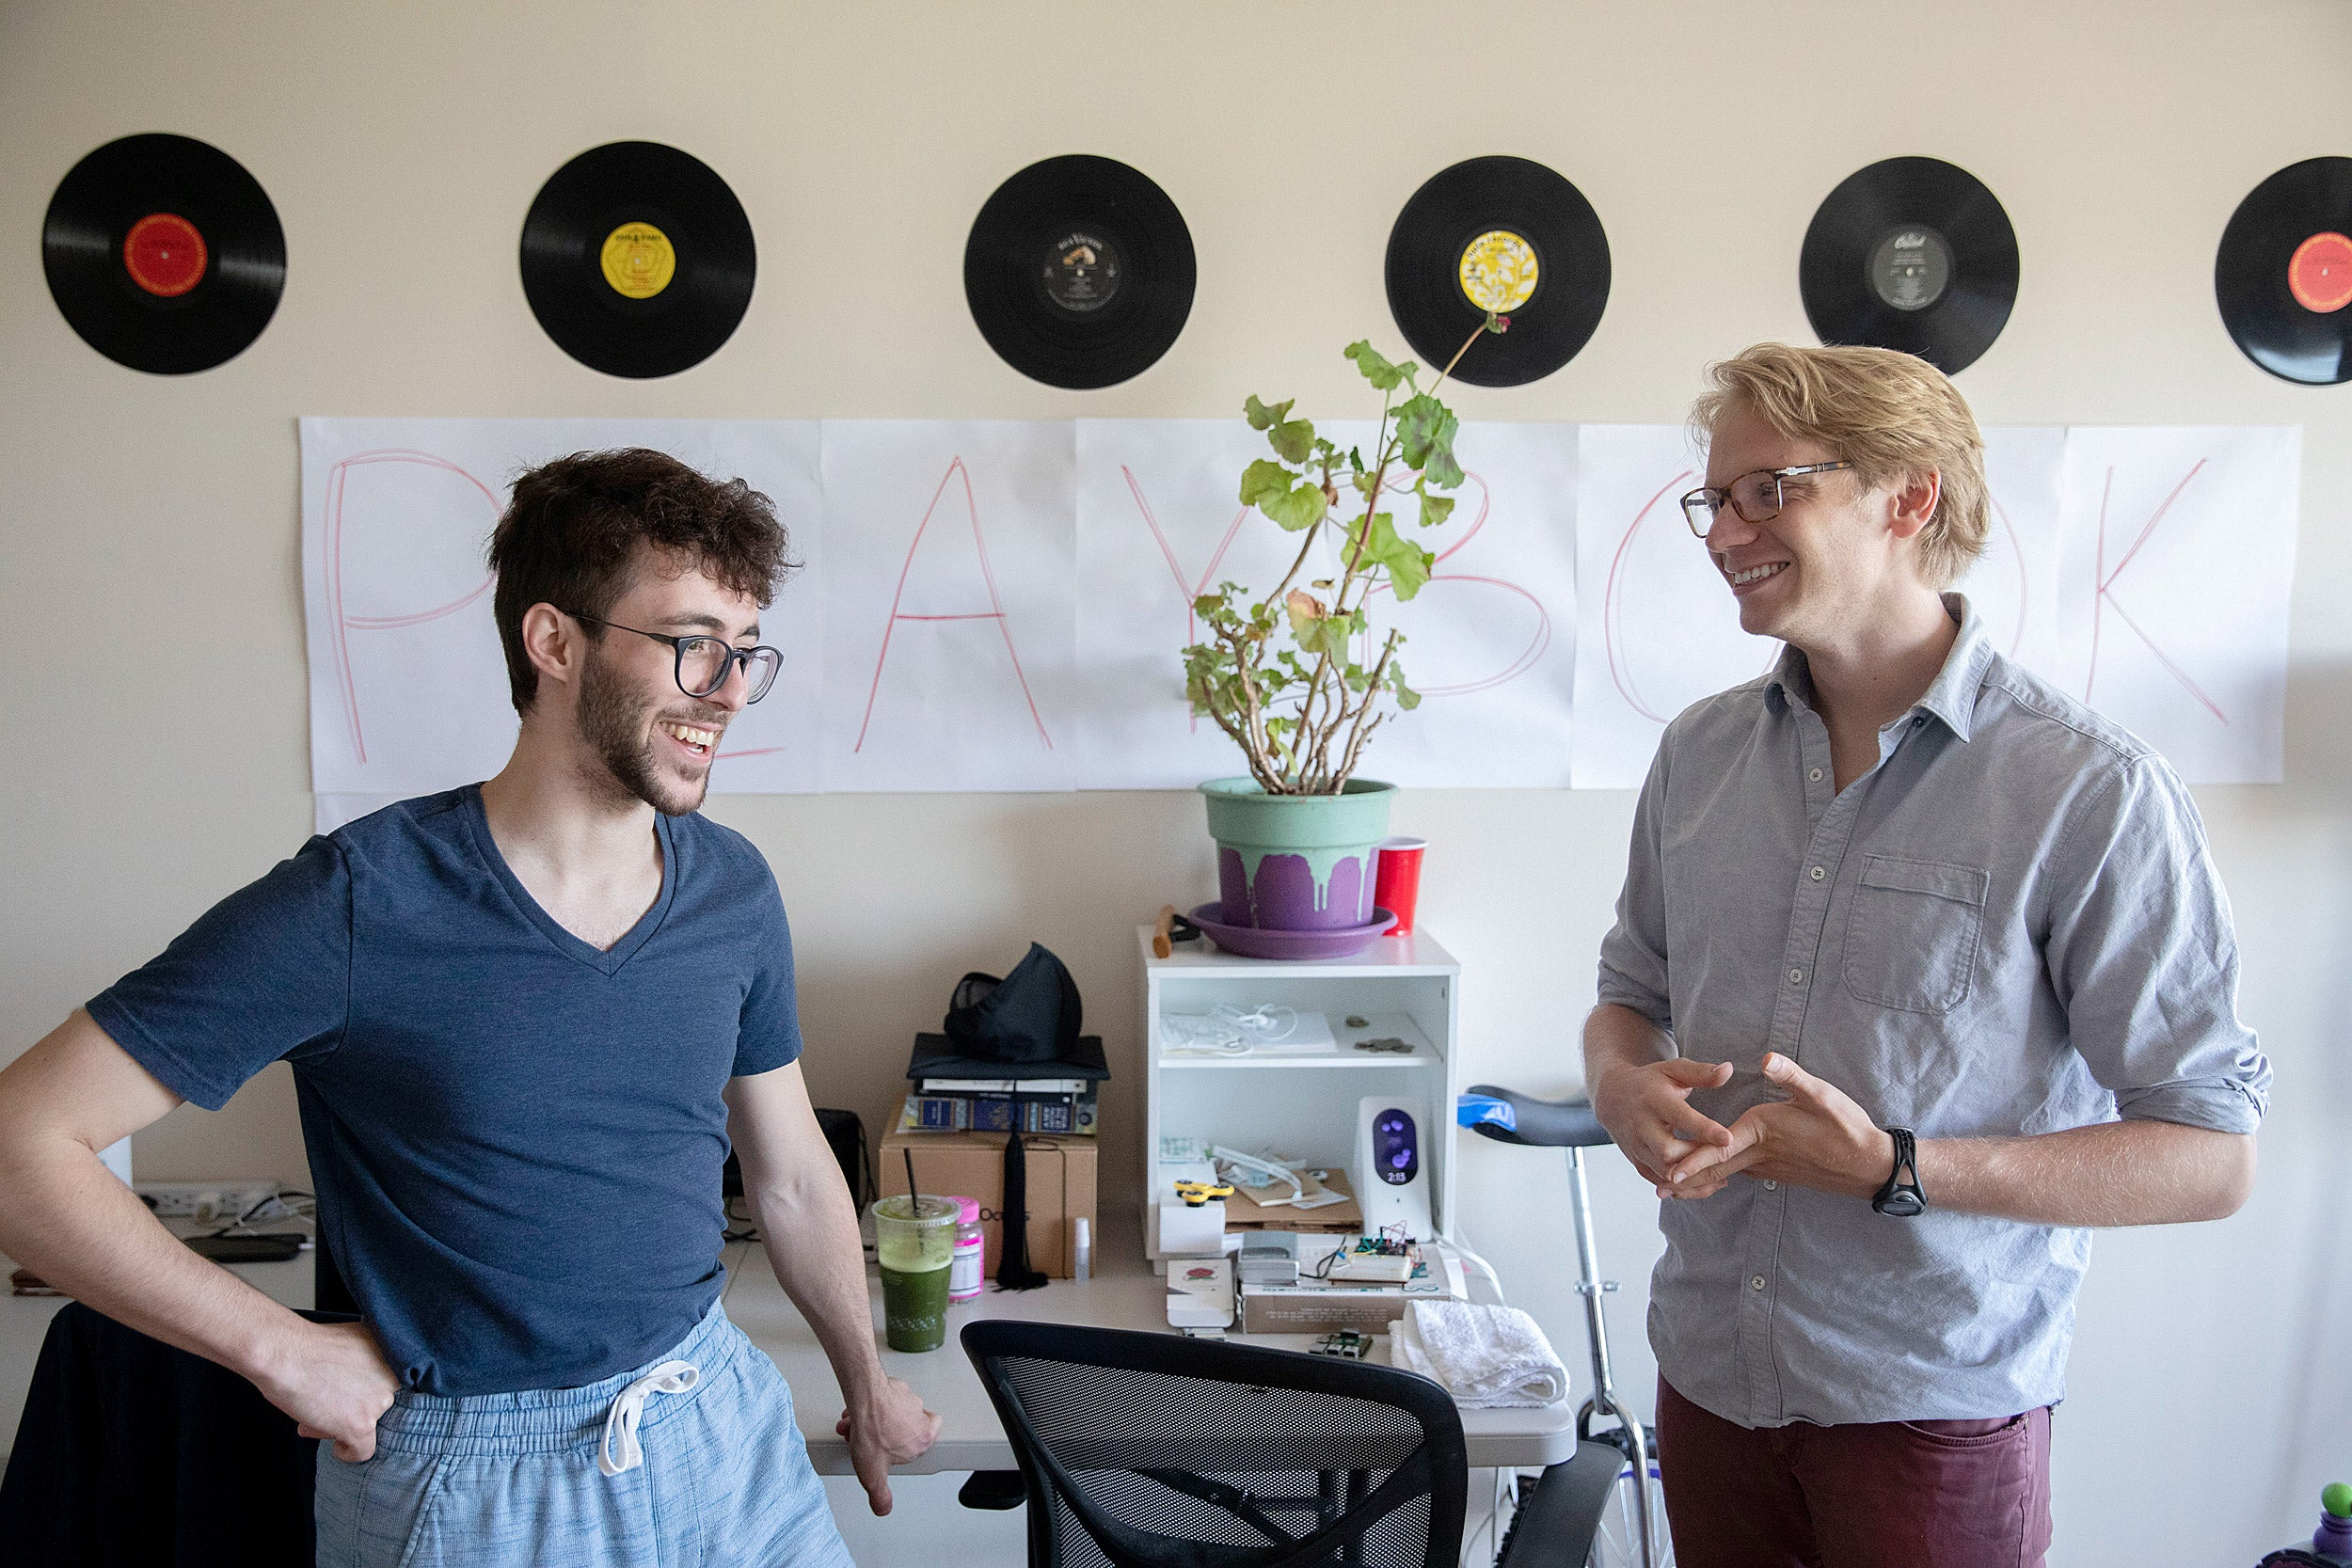 Luke Heine and Raphael Rouvinov in their home office.